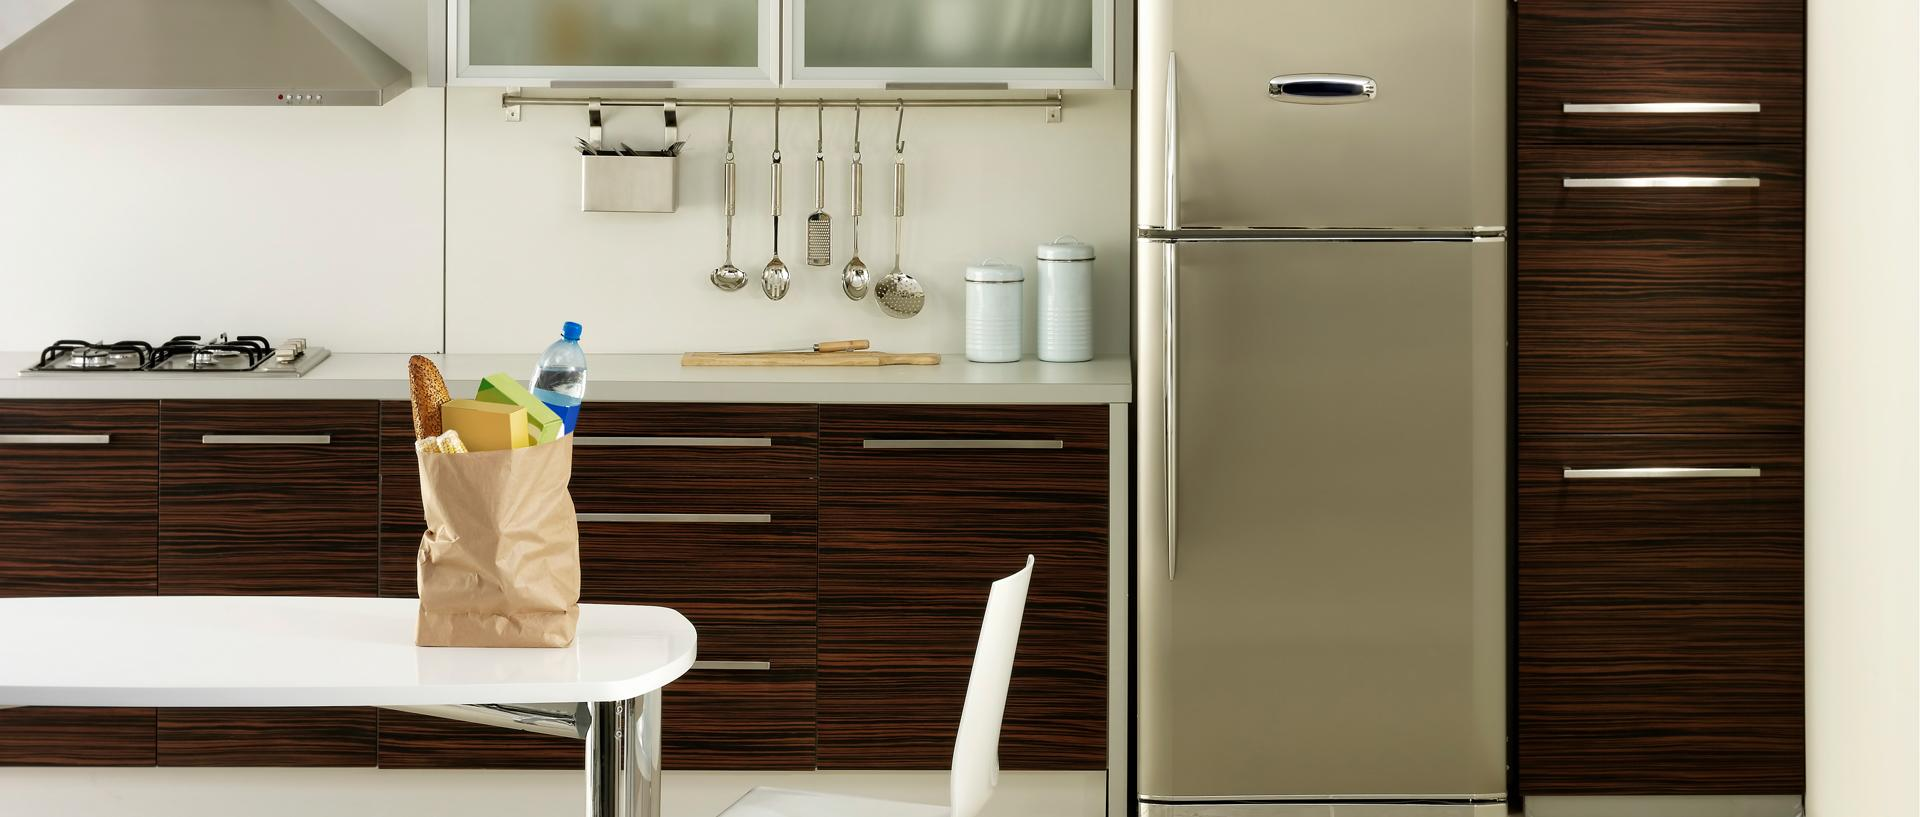 Top-Freezer Refrigerators Are Still the Sensible Choice